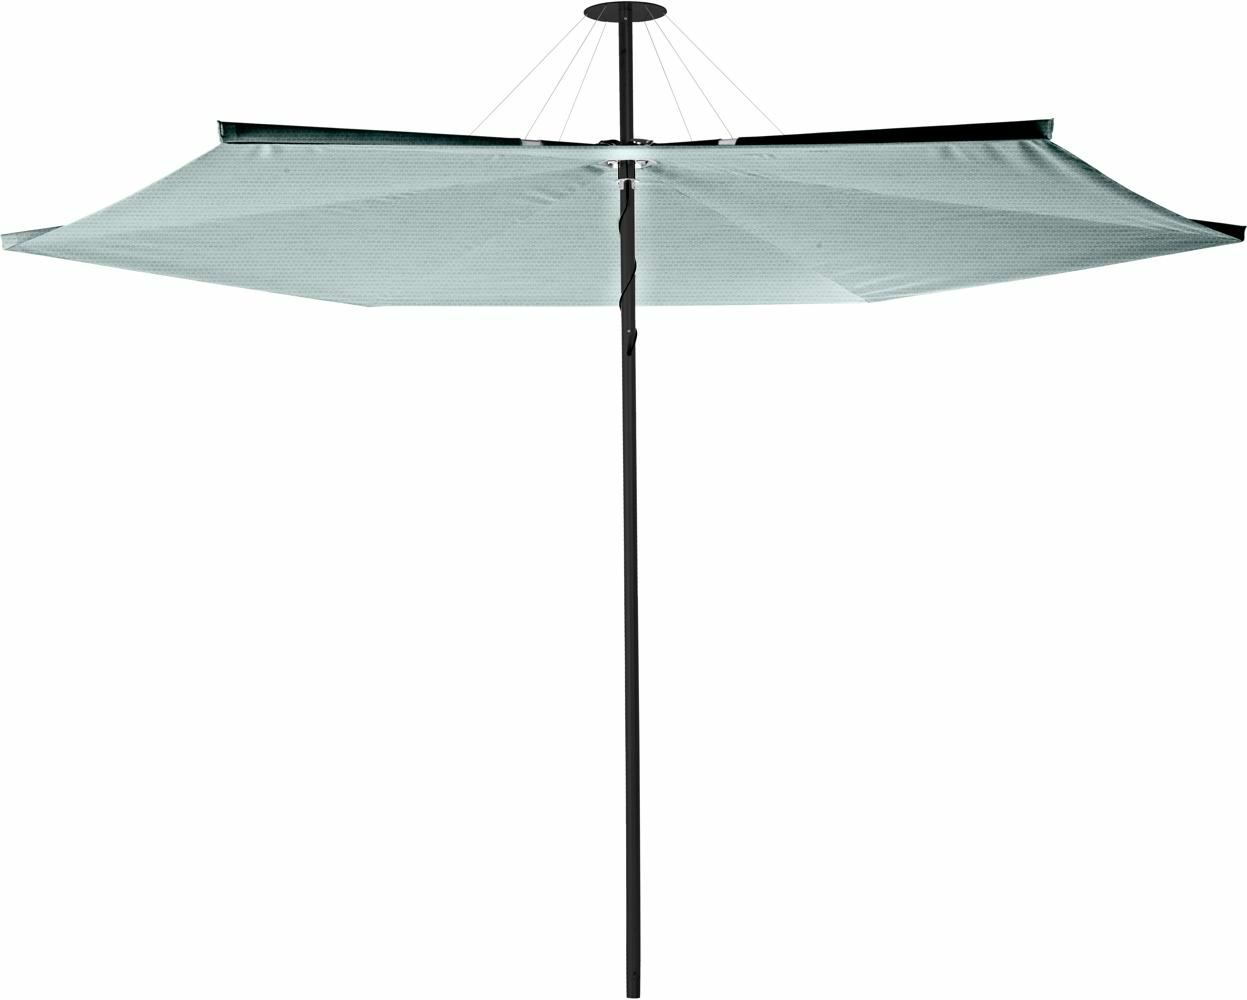 Infina center post umbrella, 3 m round, with frame in Dusk and Solidum Curacao canopy.